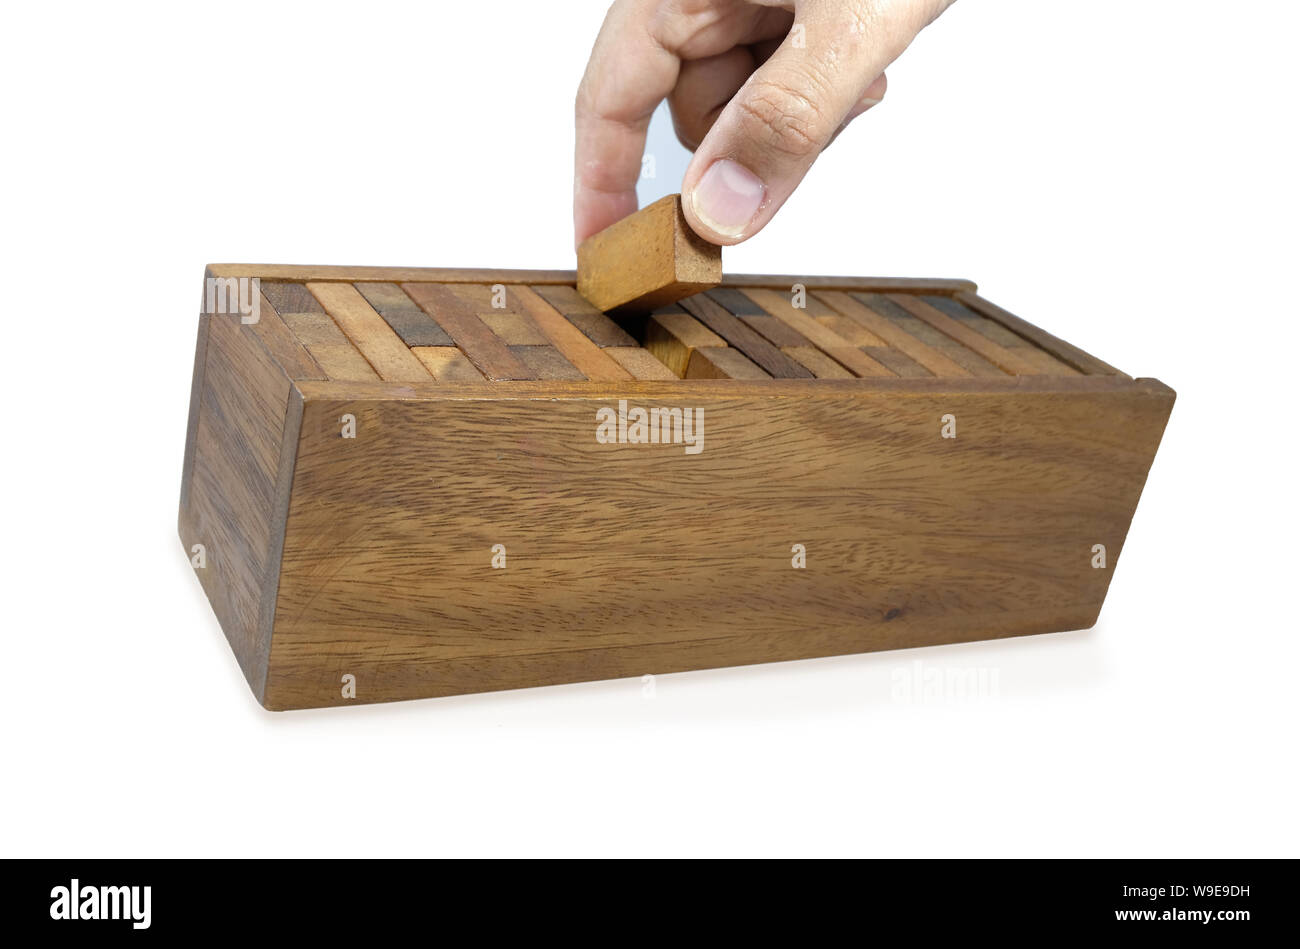 Hand is collecting pieces of wooden bricks in the box after